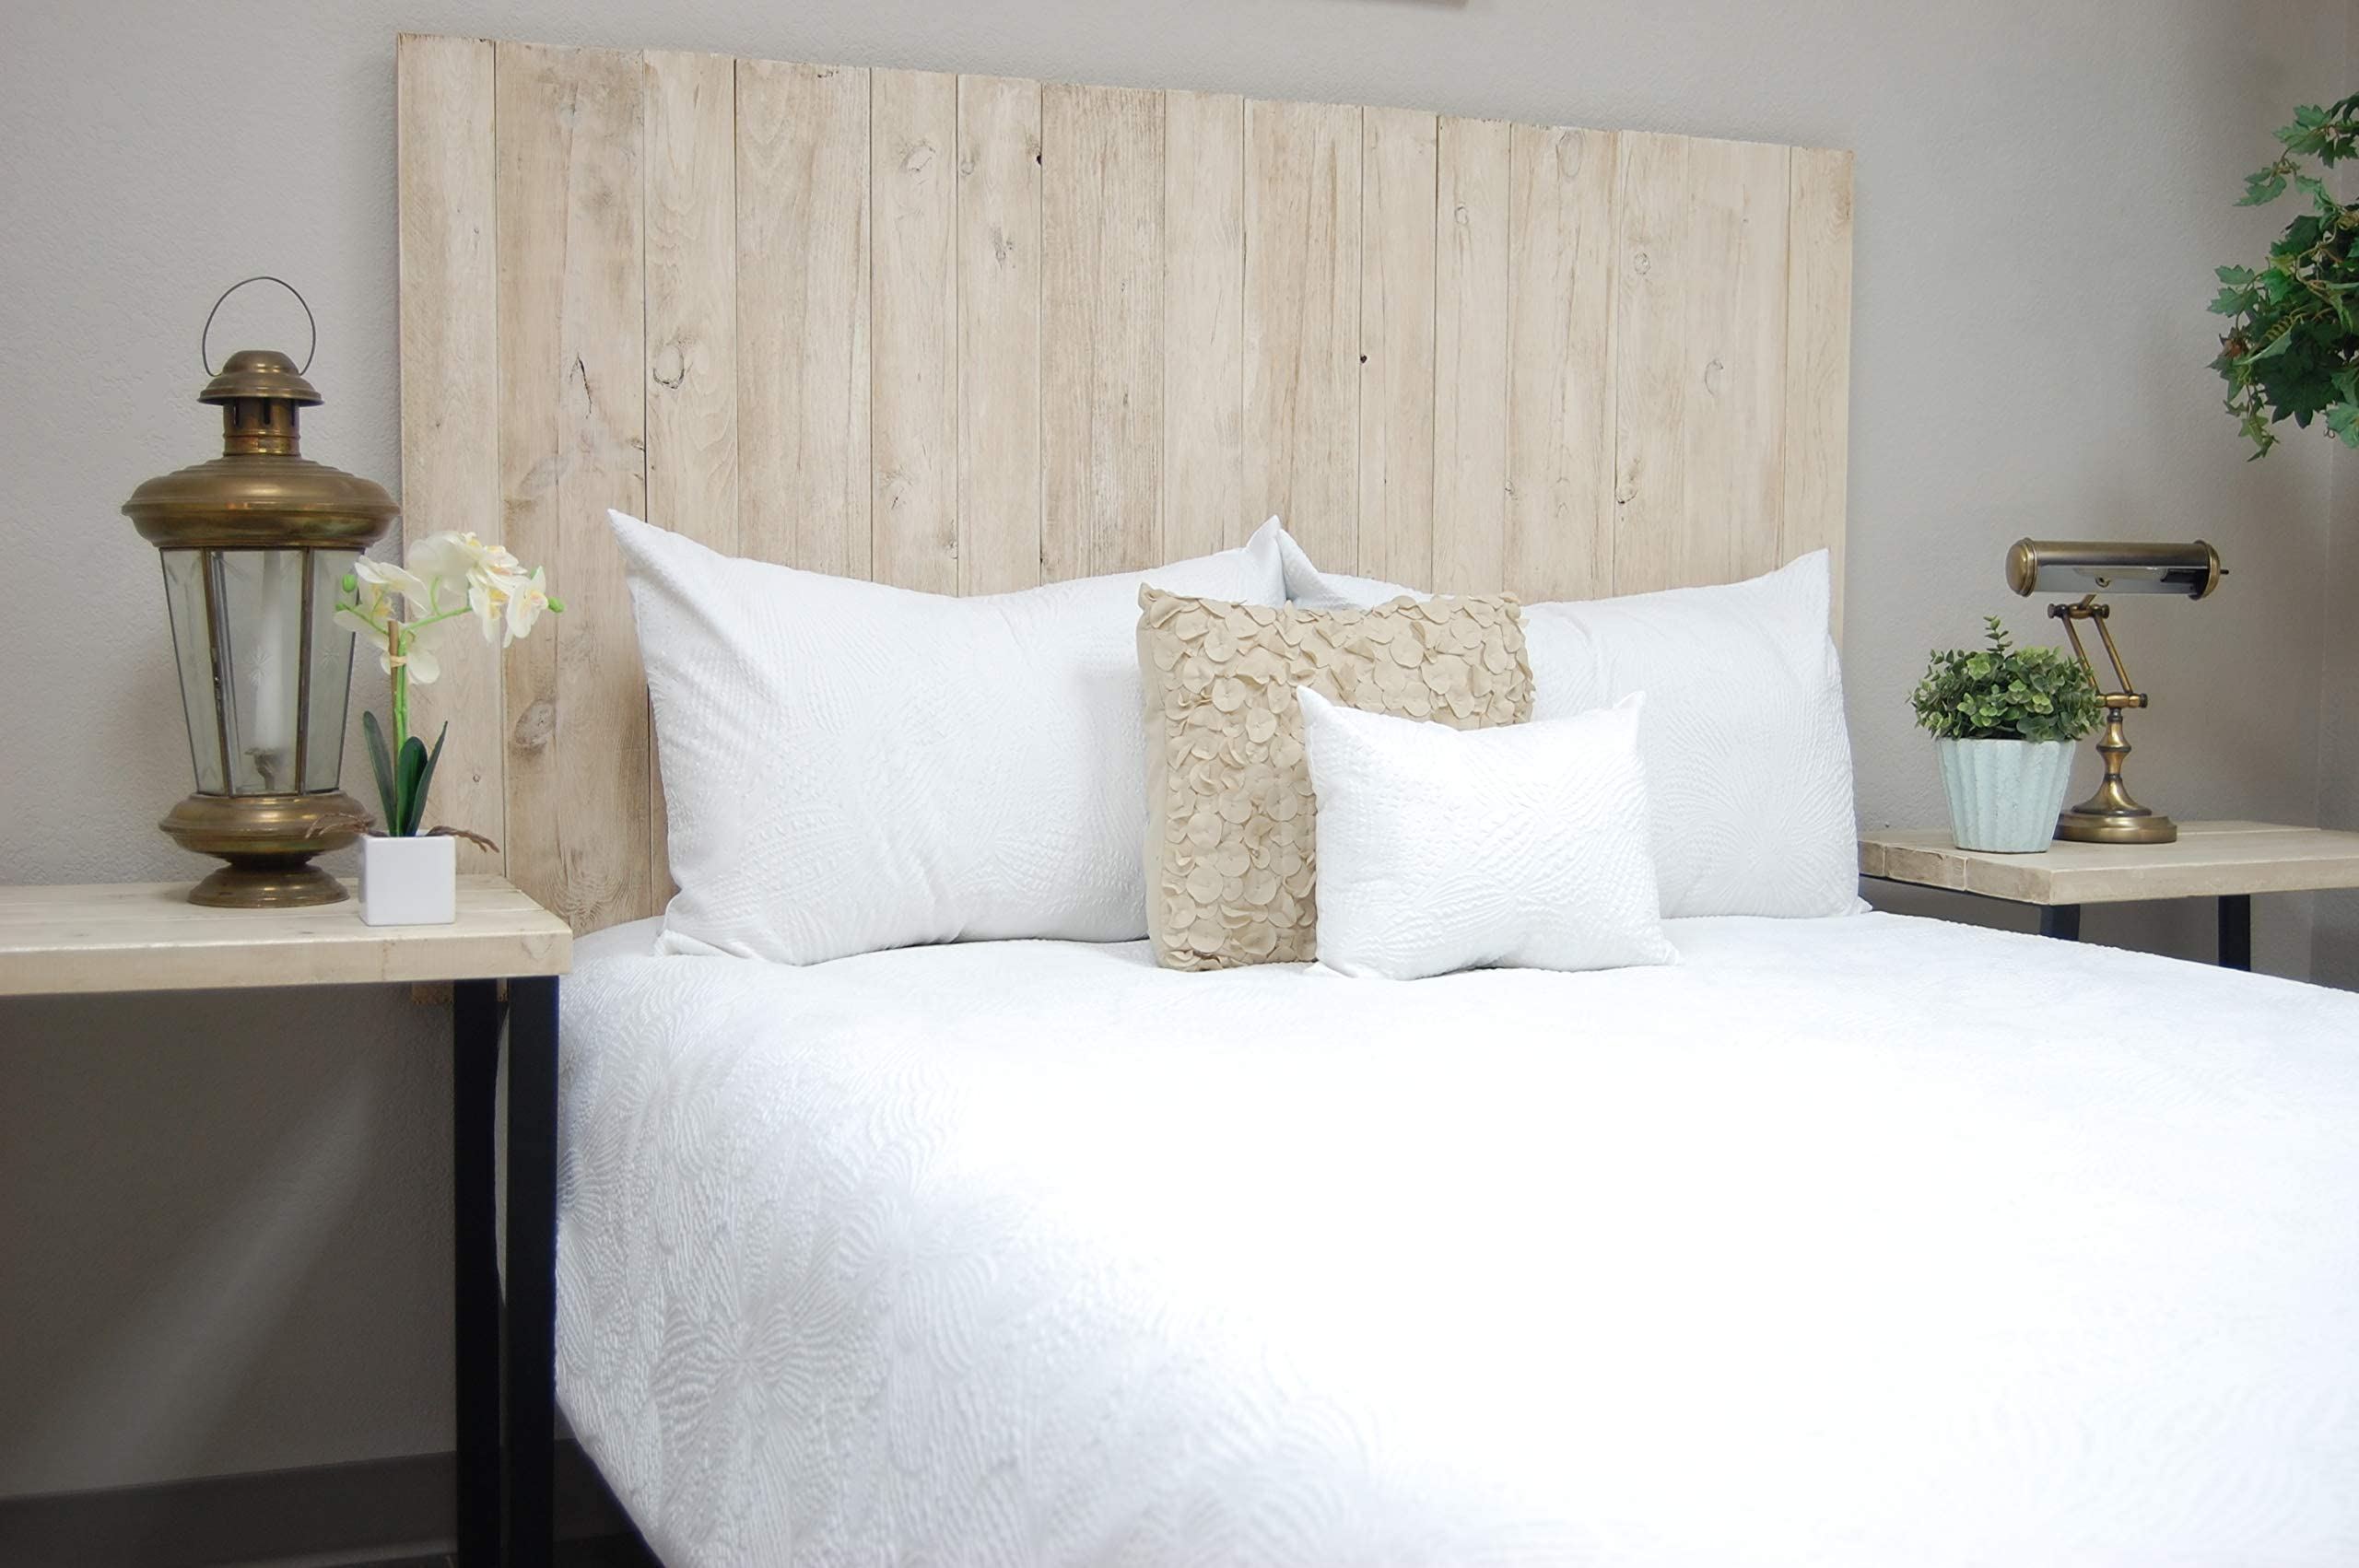 California King Queen Handcrafted King Full Easy Installation Mounts on Wall Hanger Style Twin Turquoise Headboard Weathered